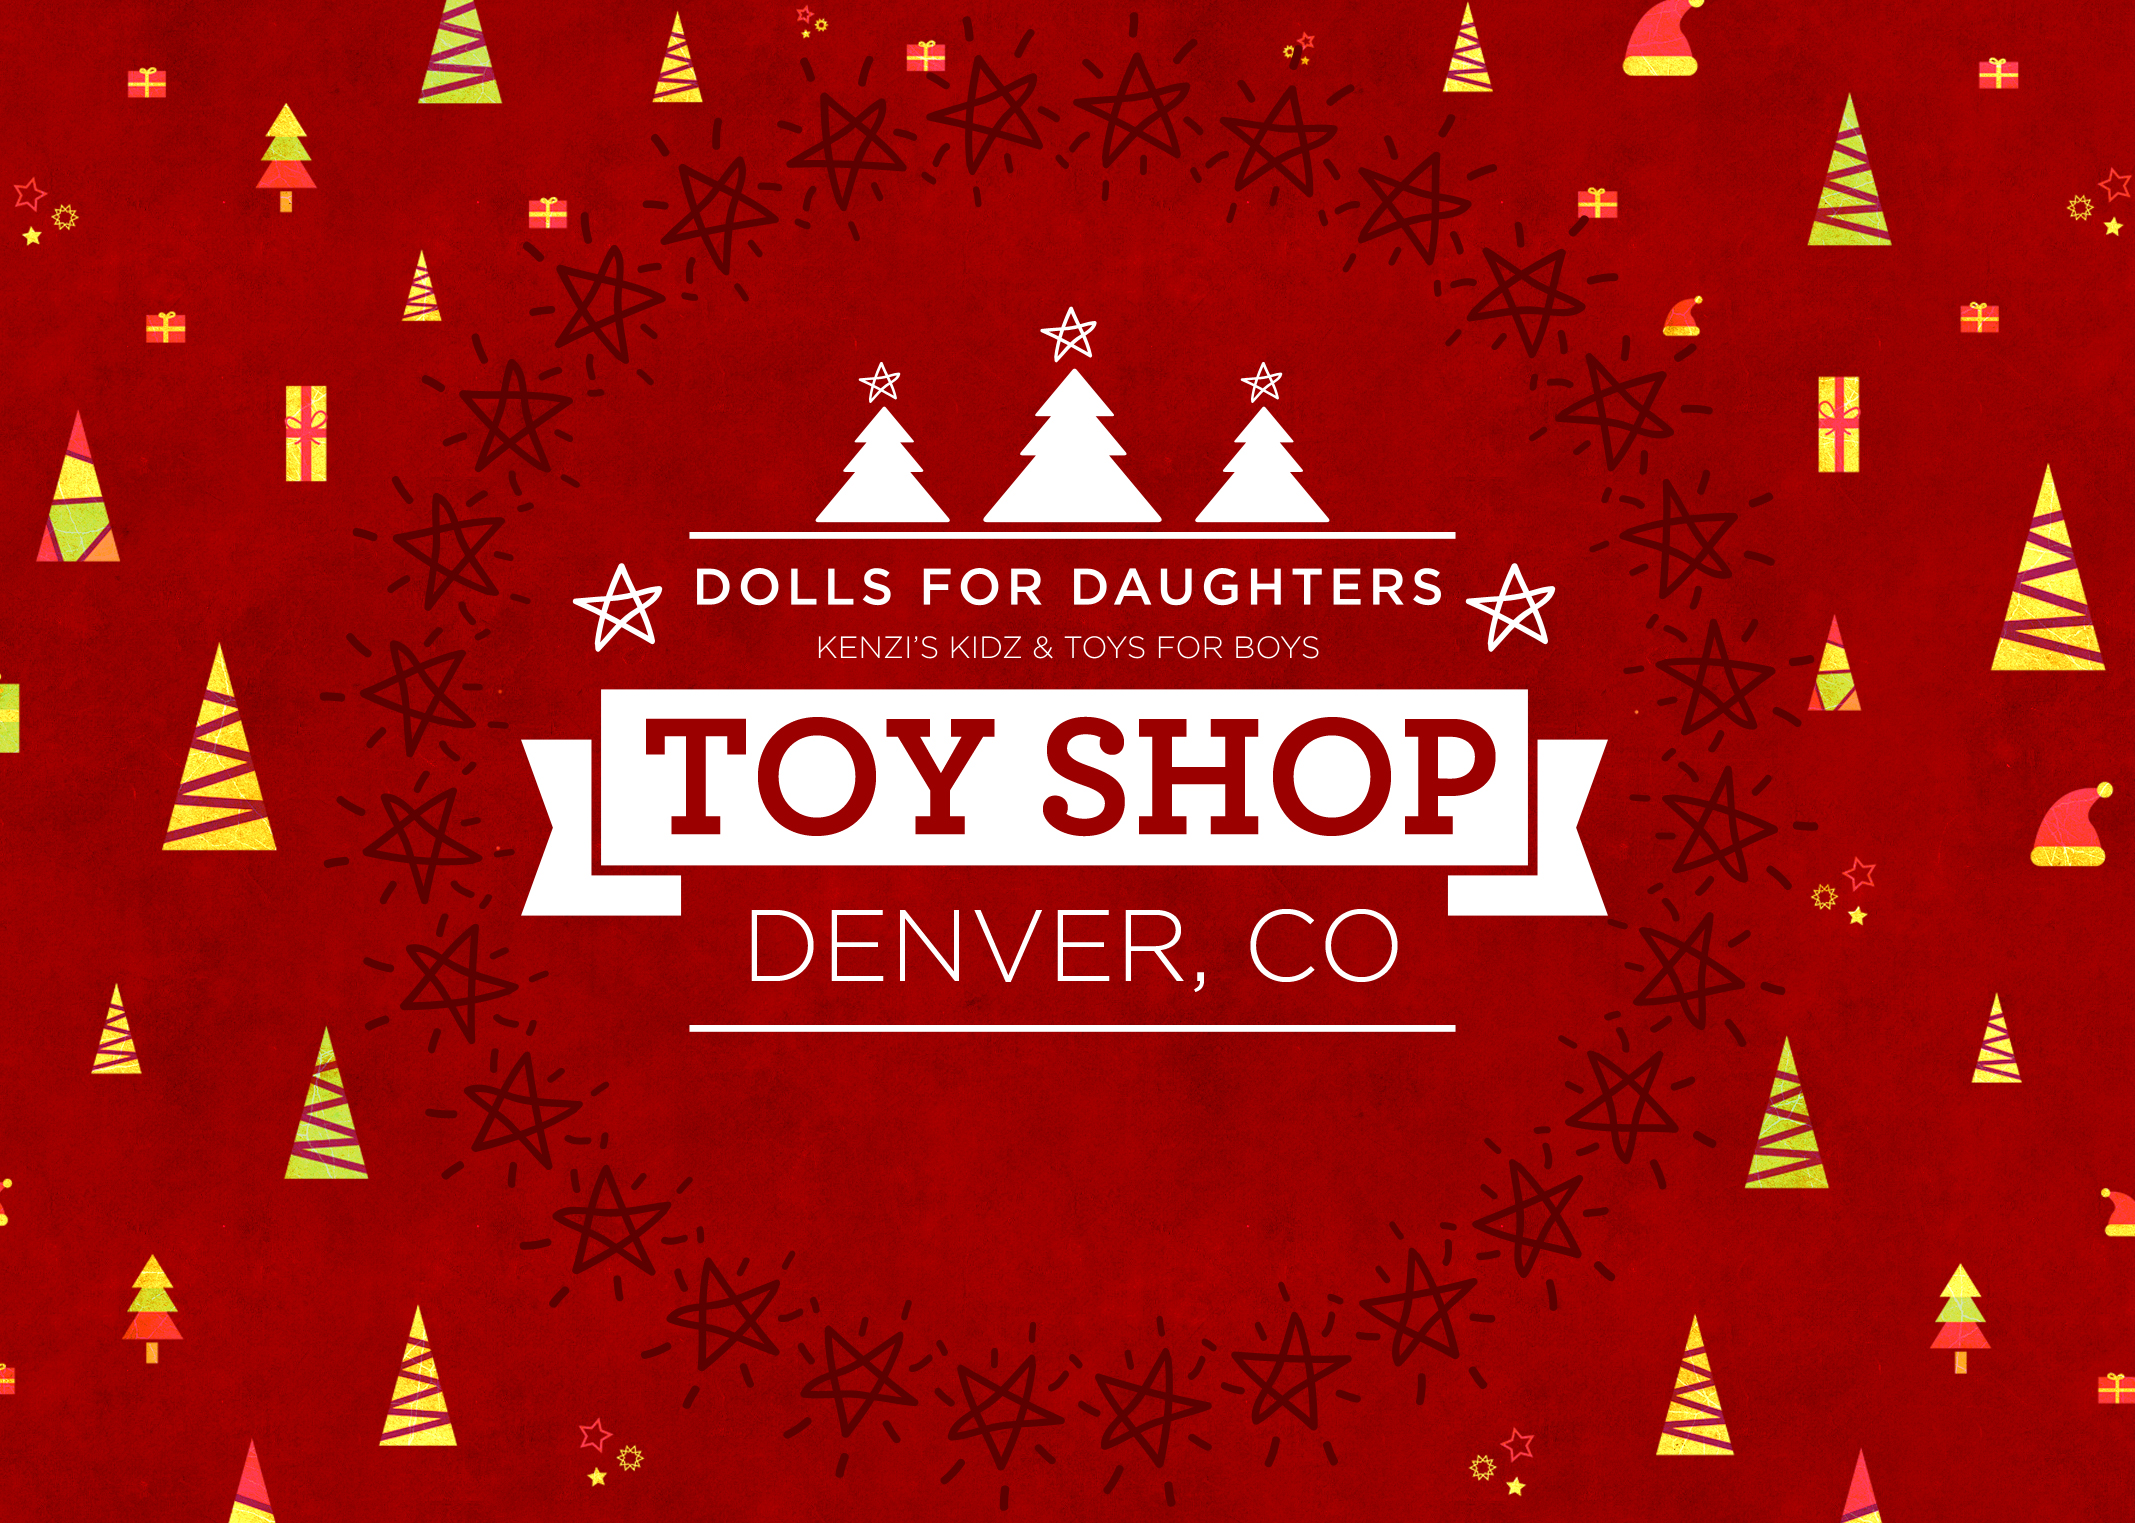 Toy Shop Denver | Dolls for Daughters